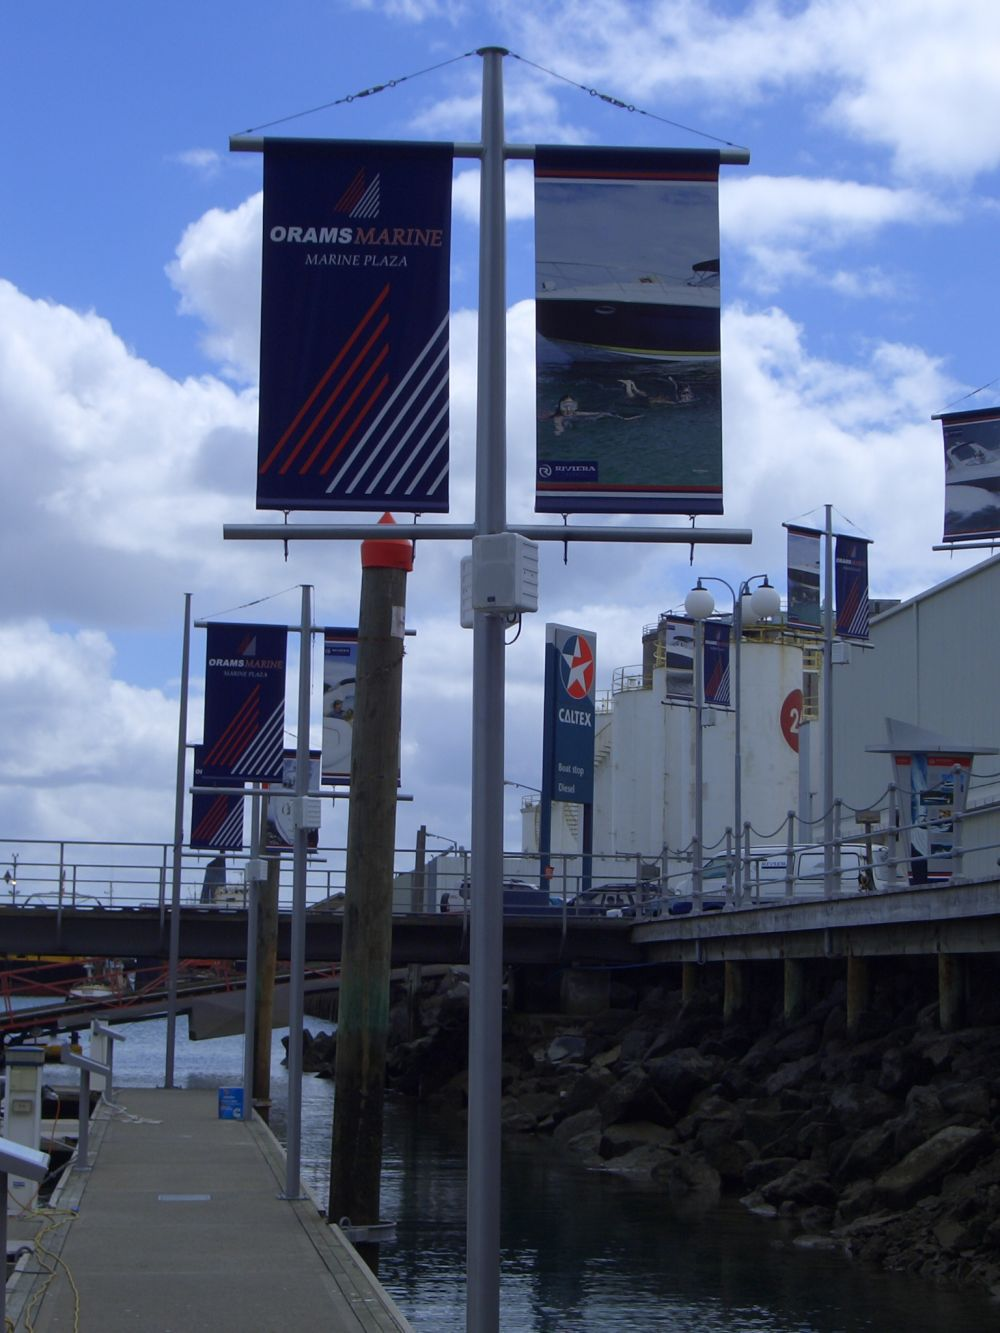 Banner poles on marina piers